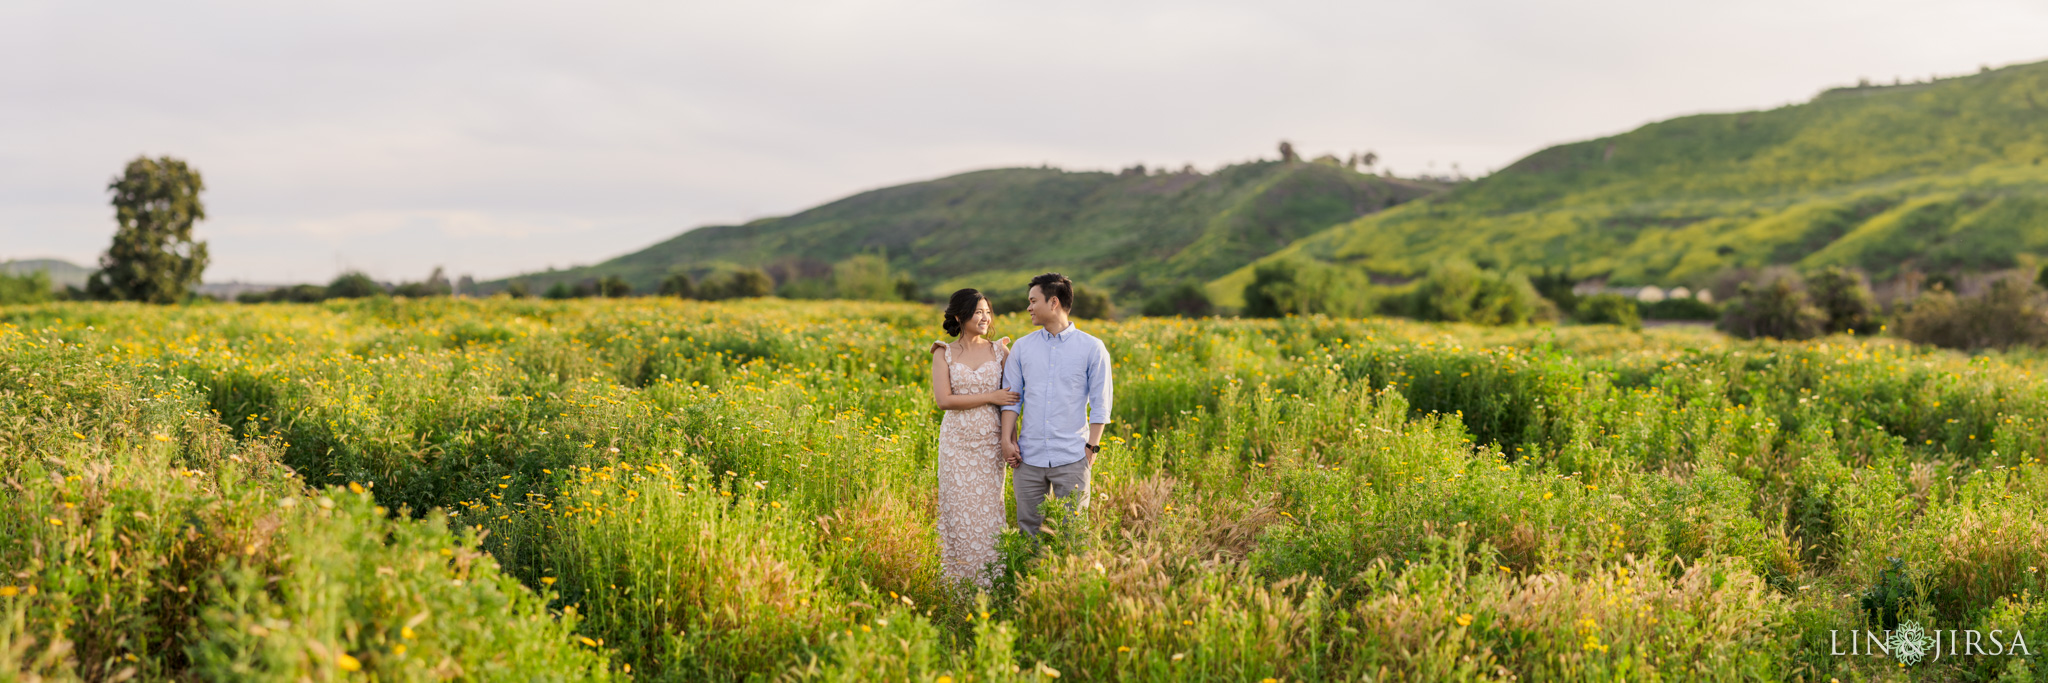 15 Northwest Open Space Orange County Engagement Photography